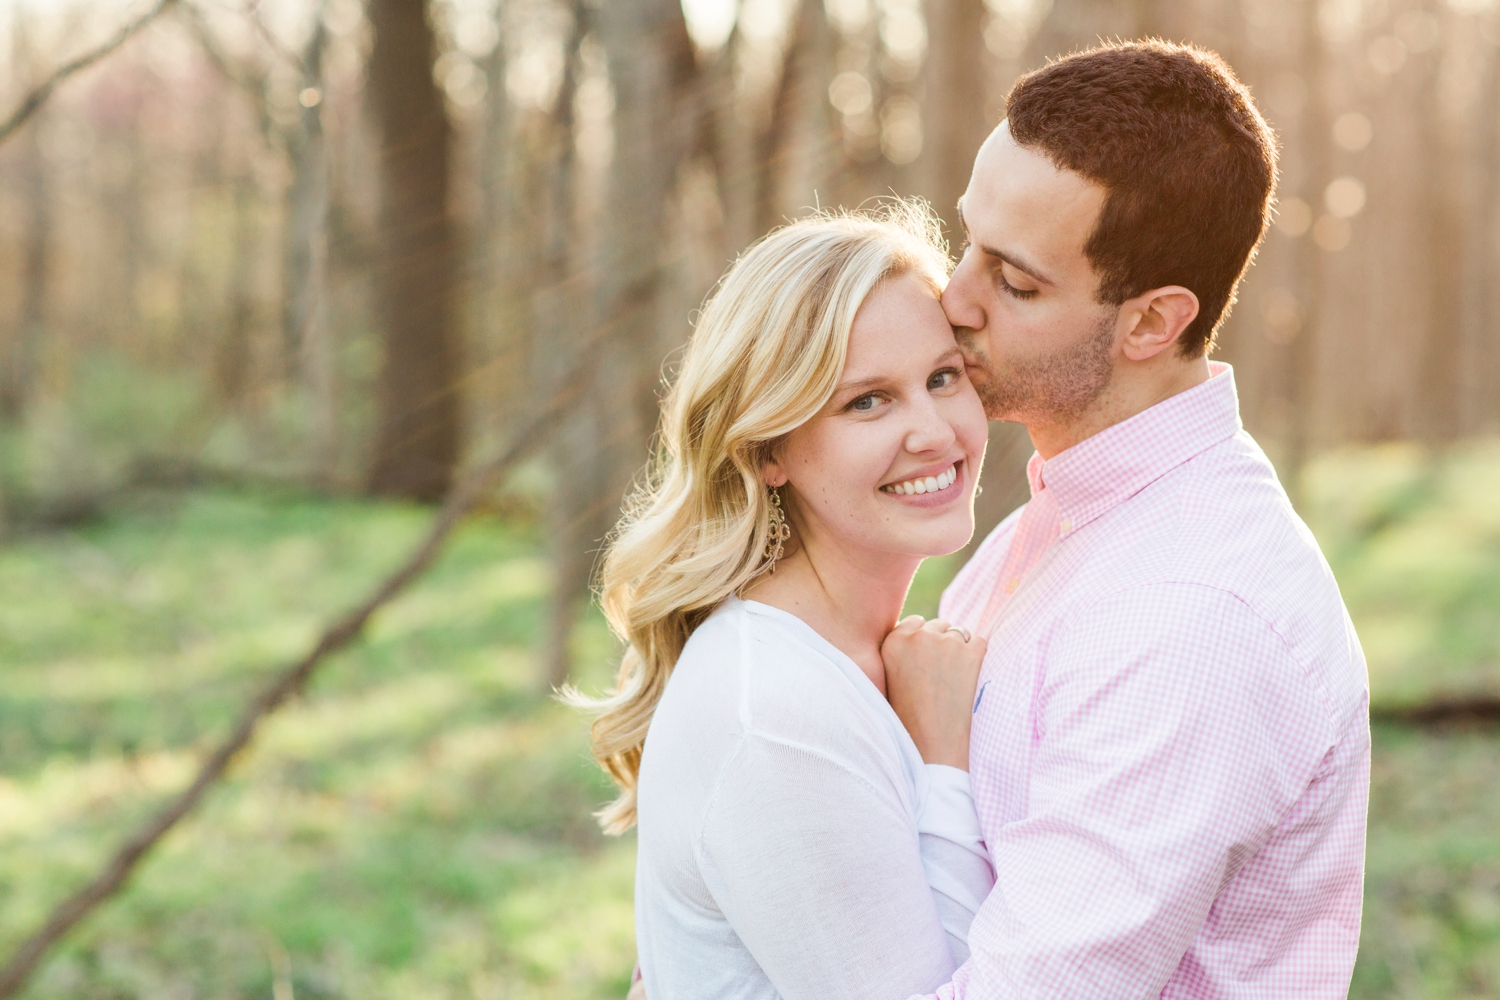 indianapolis_wedding_photographer_golden_hour_engagement_chloe_luka_photography_6120.jpg